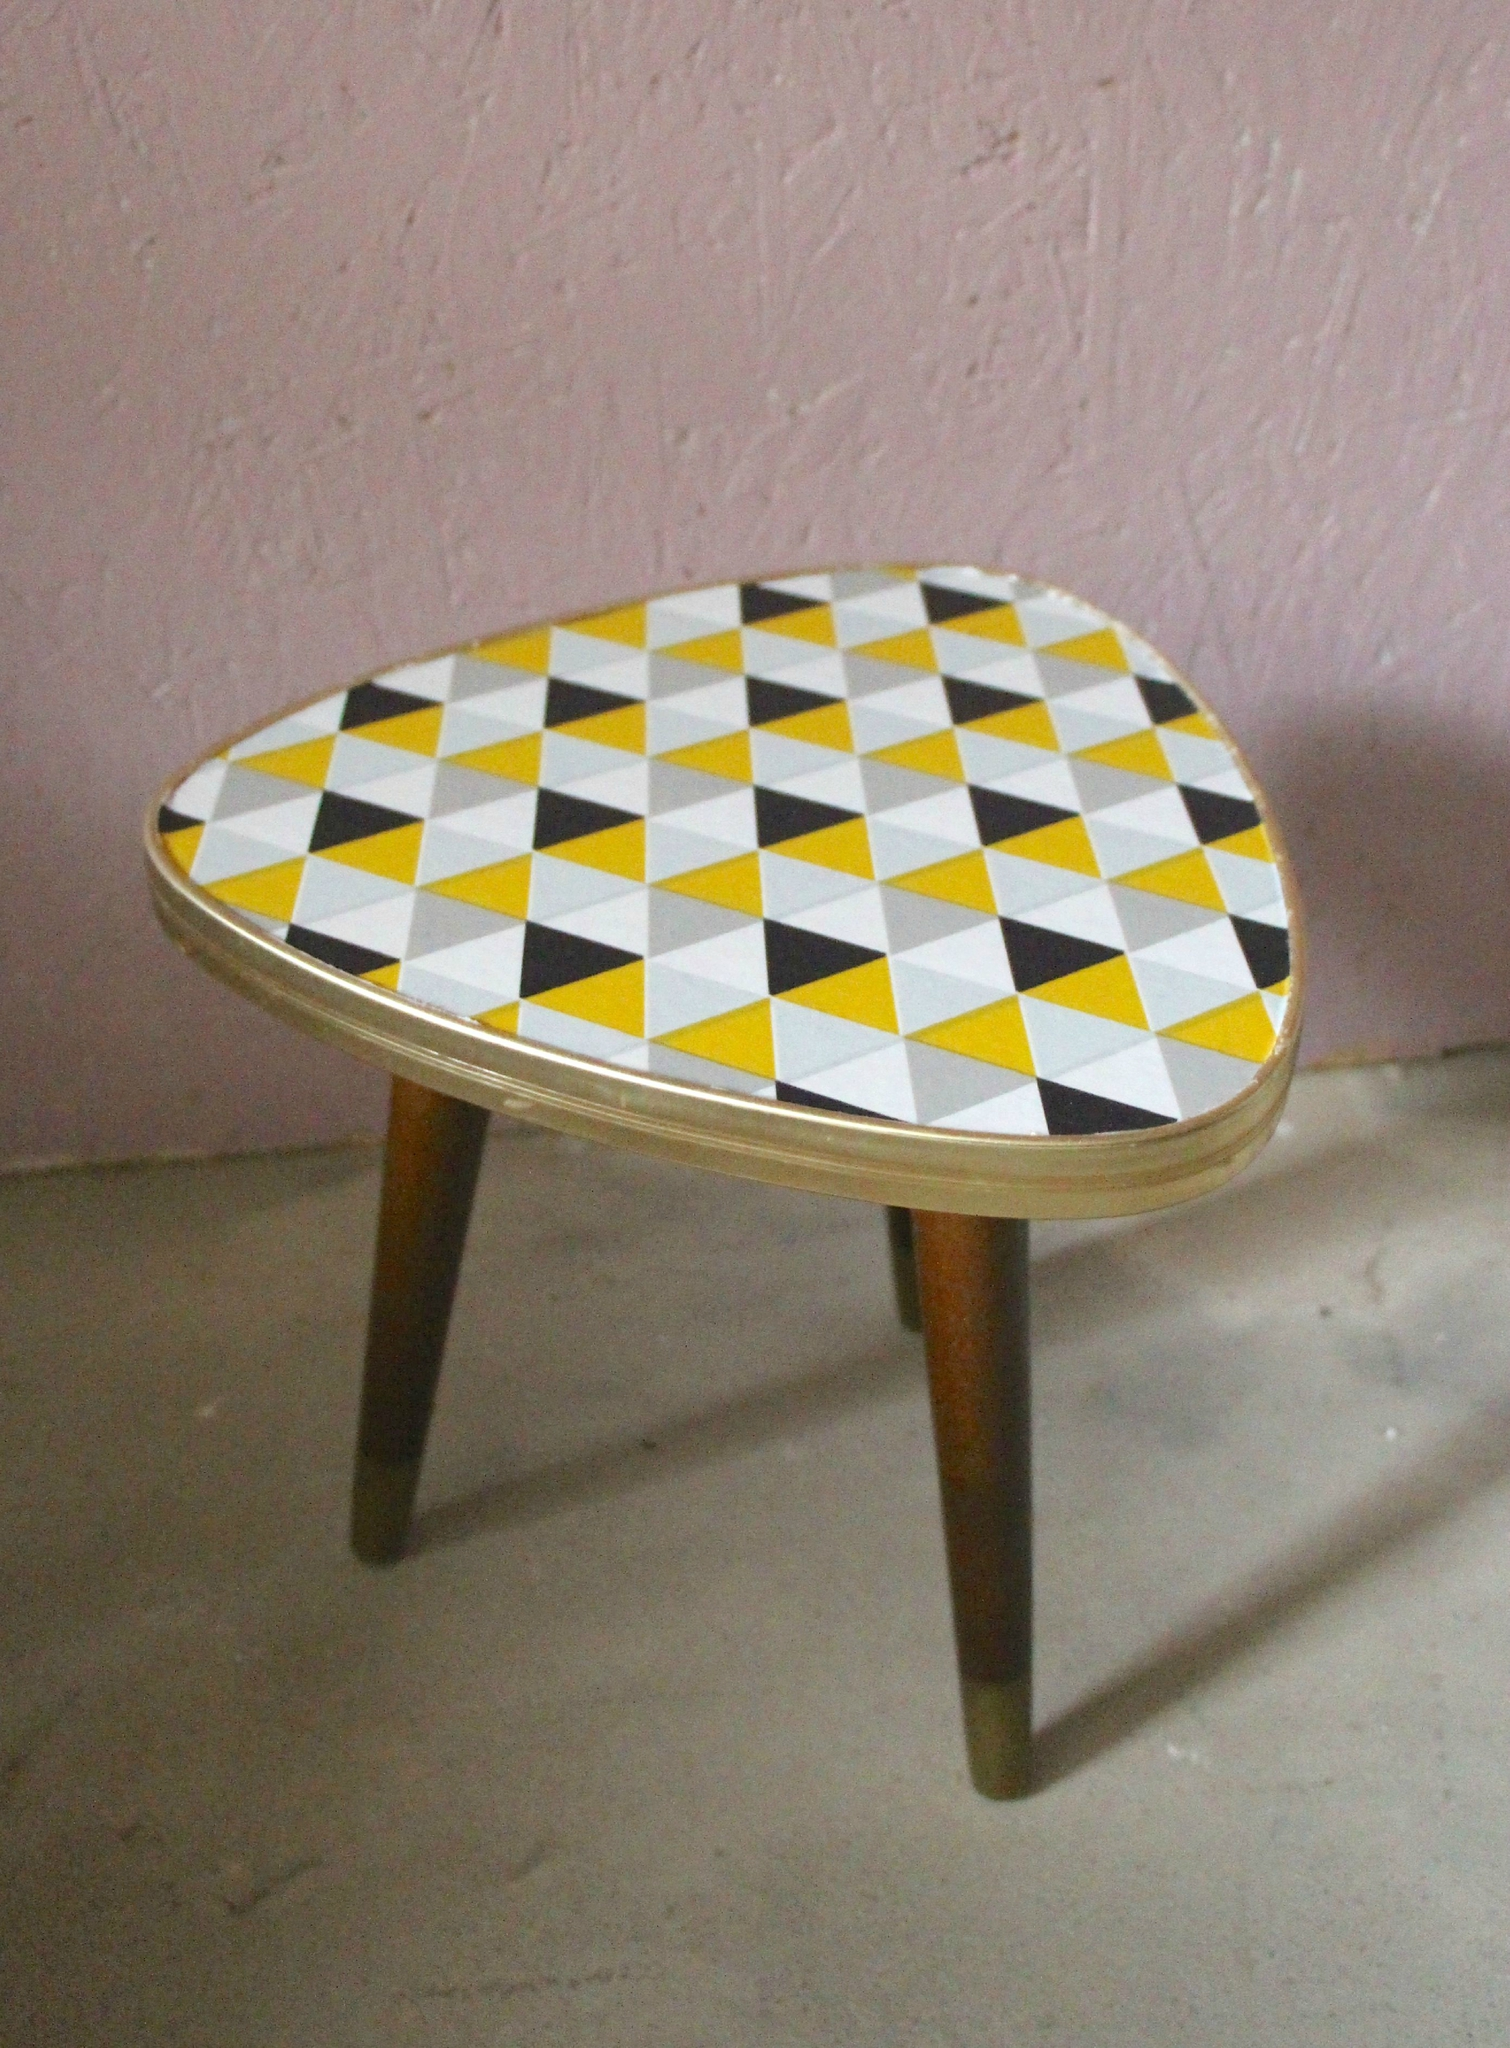 retour de chine, table tripode, table tripode, table scandinave